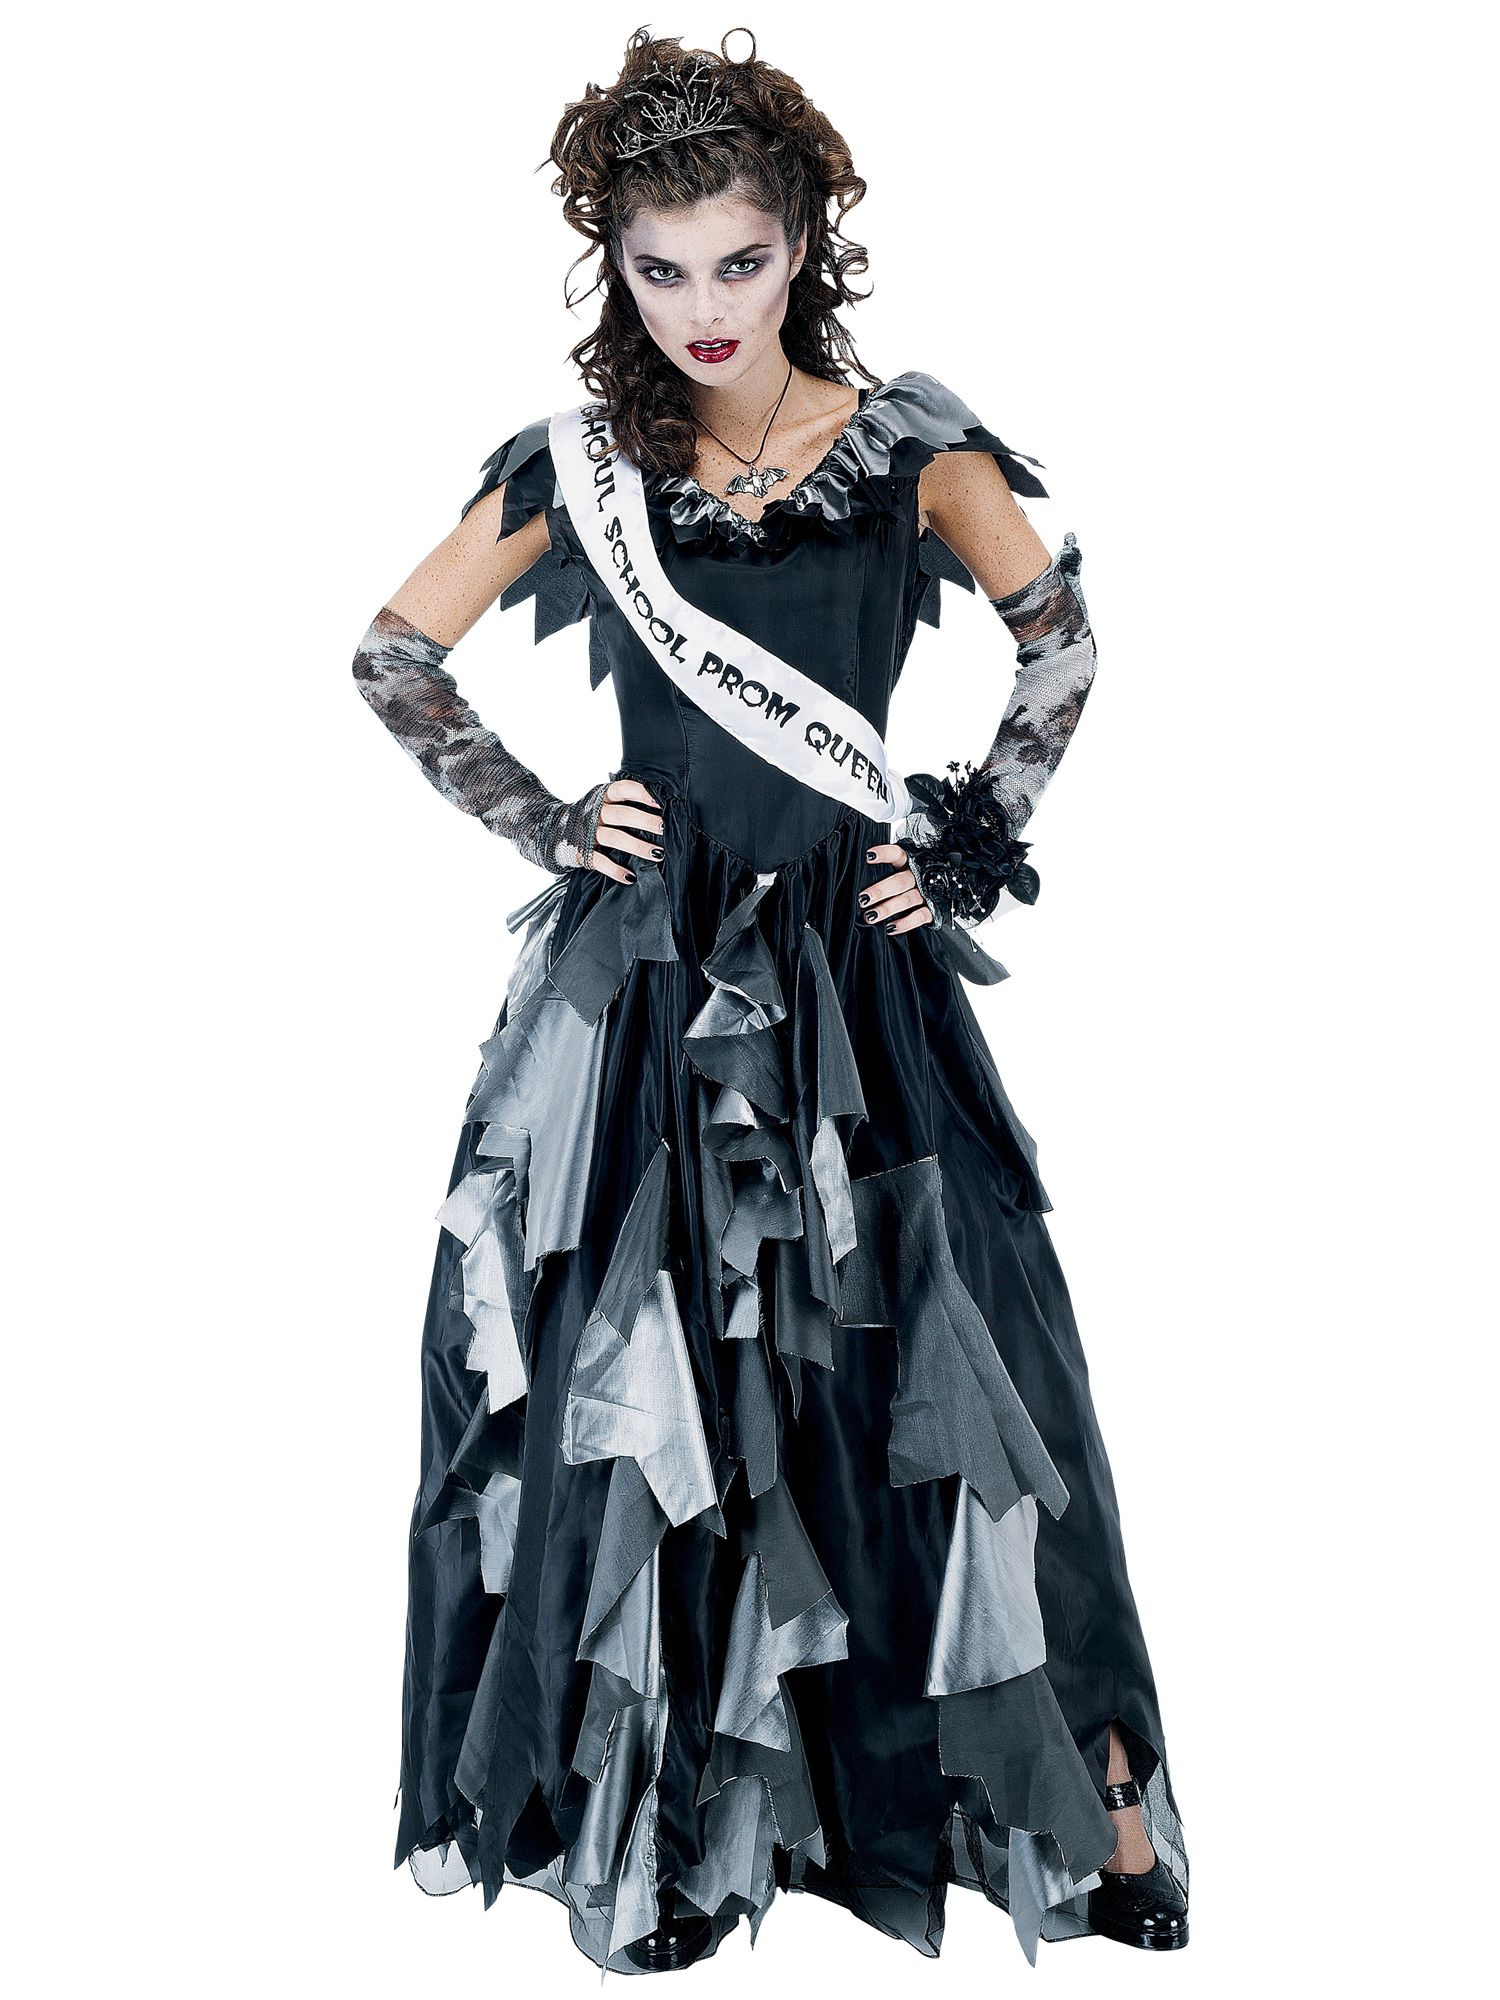 Prom Queen Women's Zombie Costume